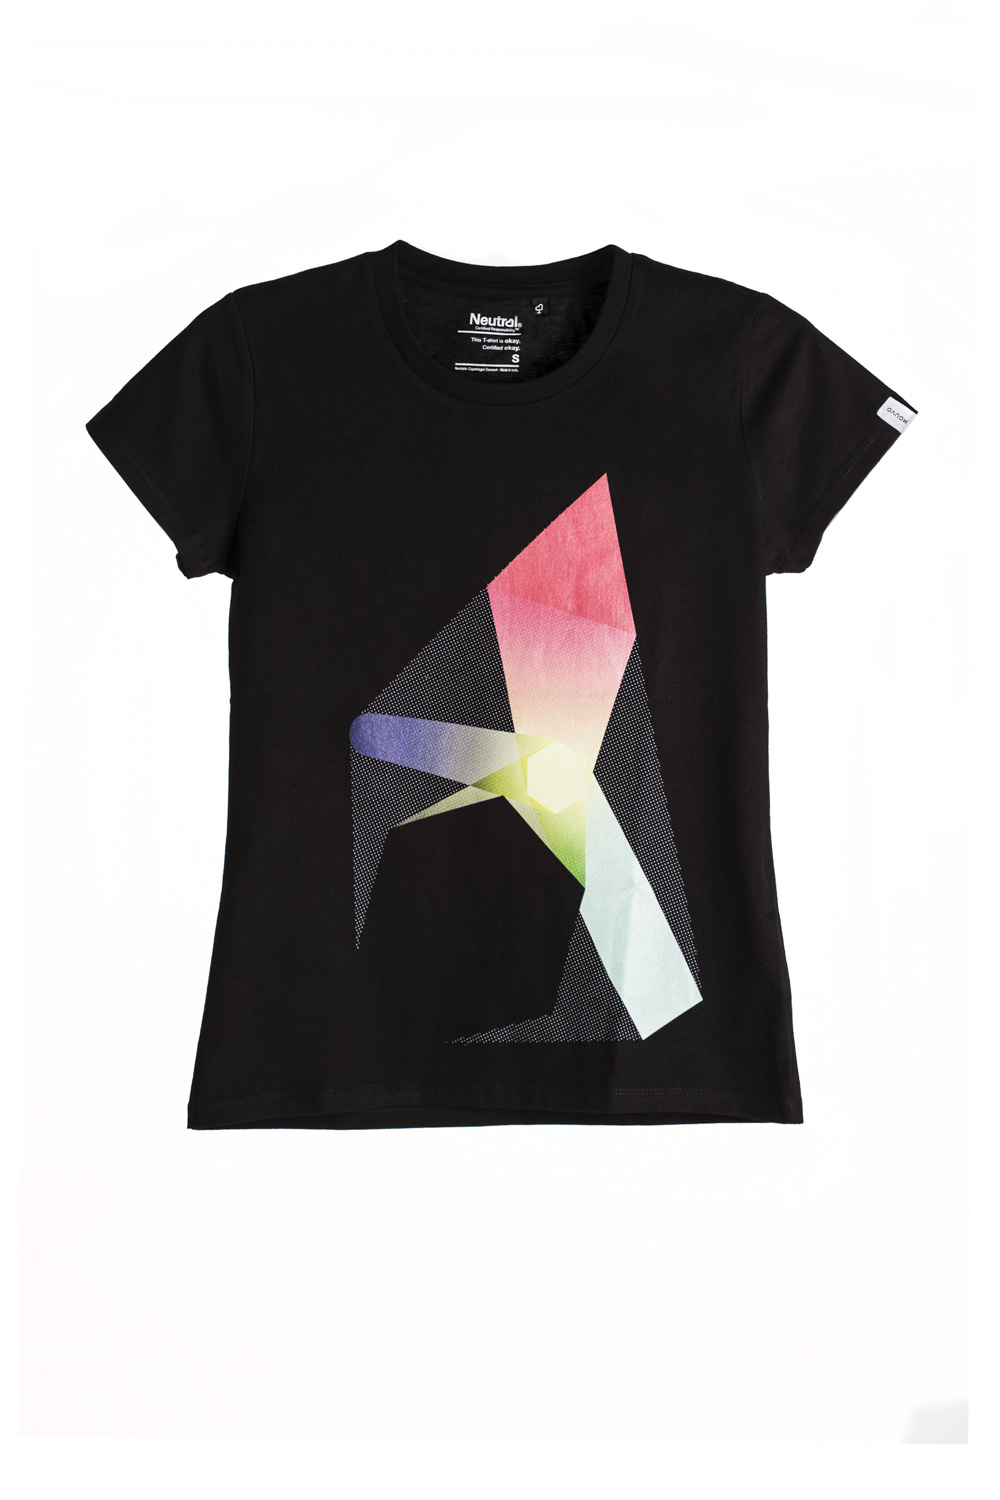 woman Black Polygon Print T-shirt short sleeve